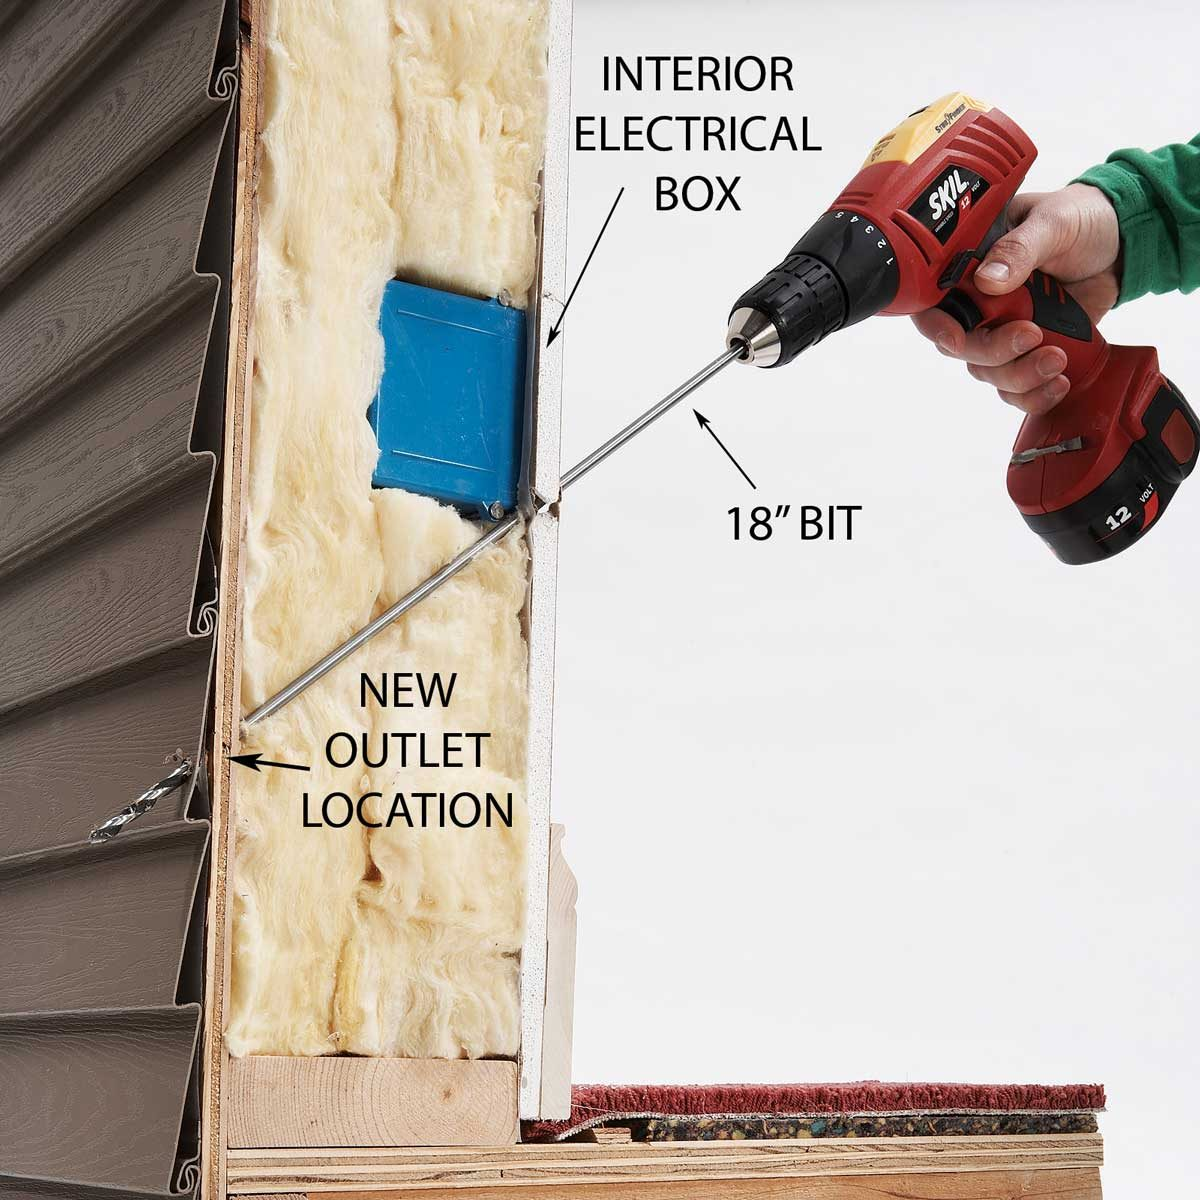 Drill Through the Exterior Wall